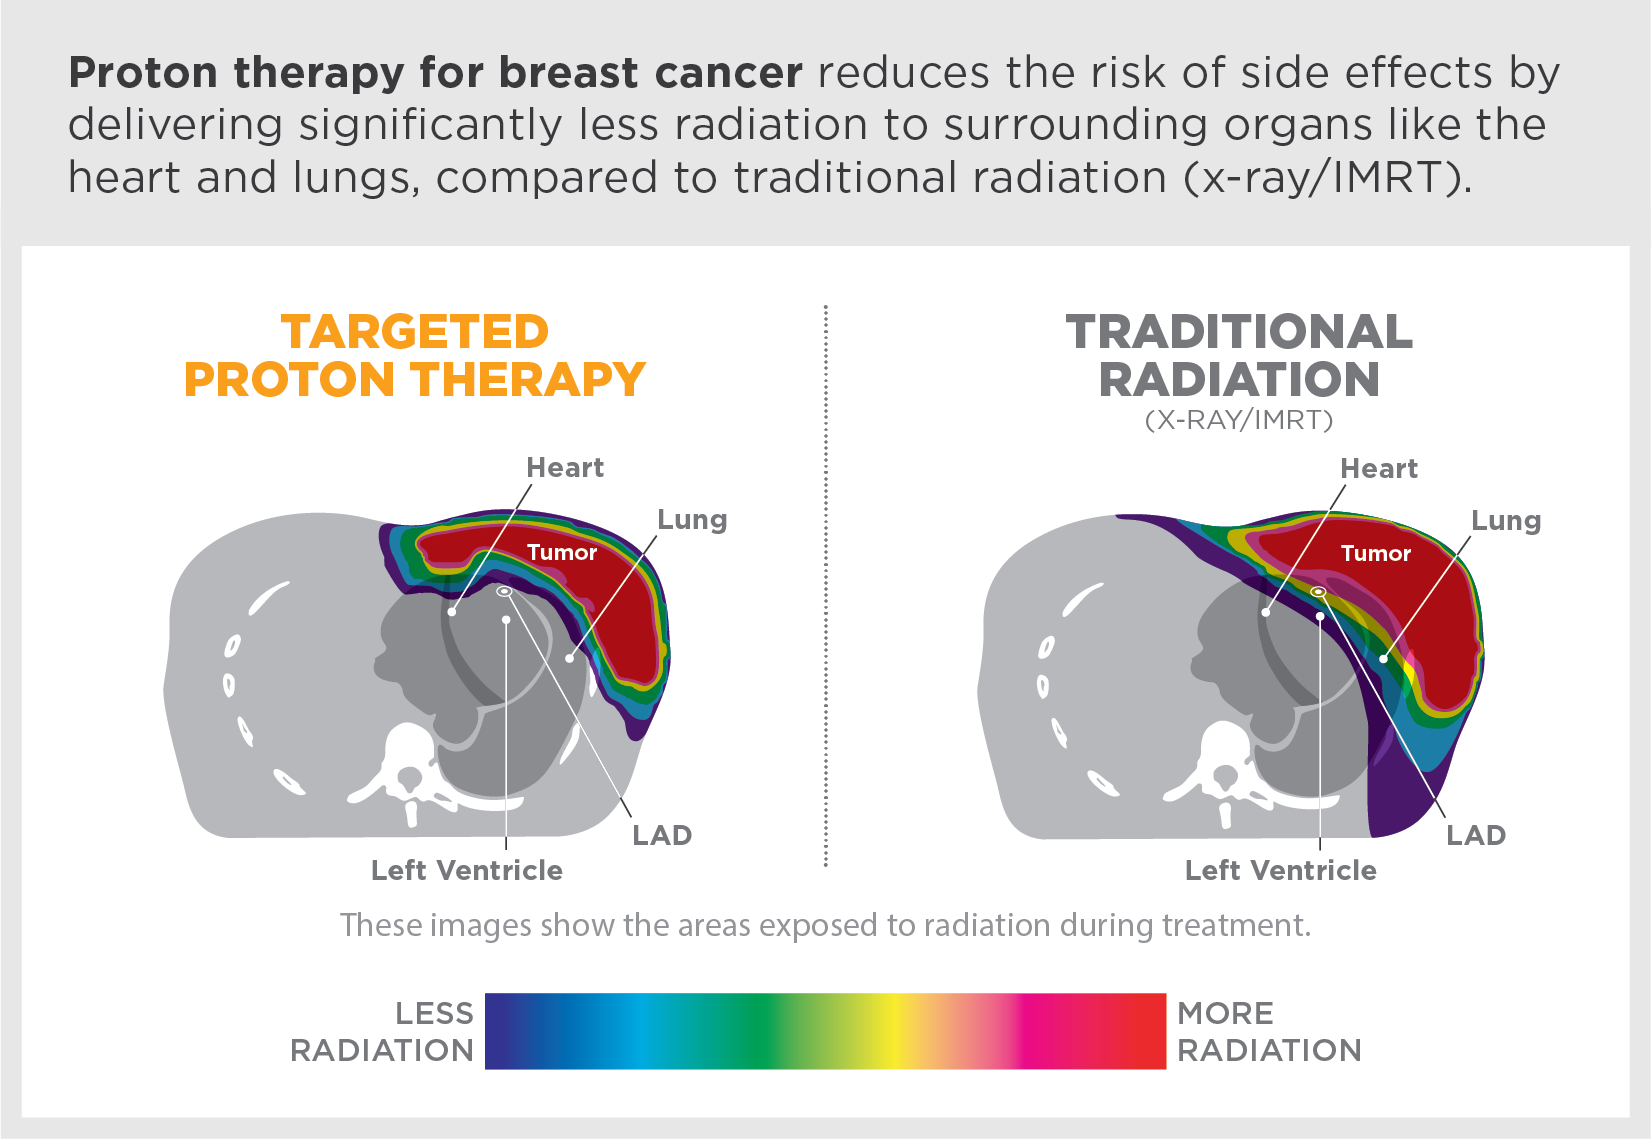 Proton therapy for breast cancer reduces the risk of side effects by delivering significantly less radiation to surrounding organs like the heart and lungs, compared to traditional radiation (x-ray/IMRT).